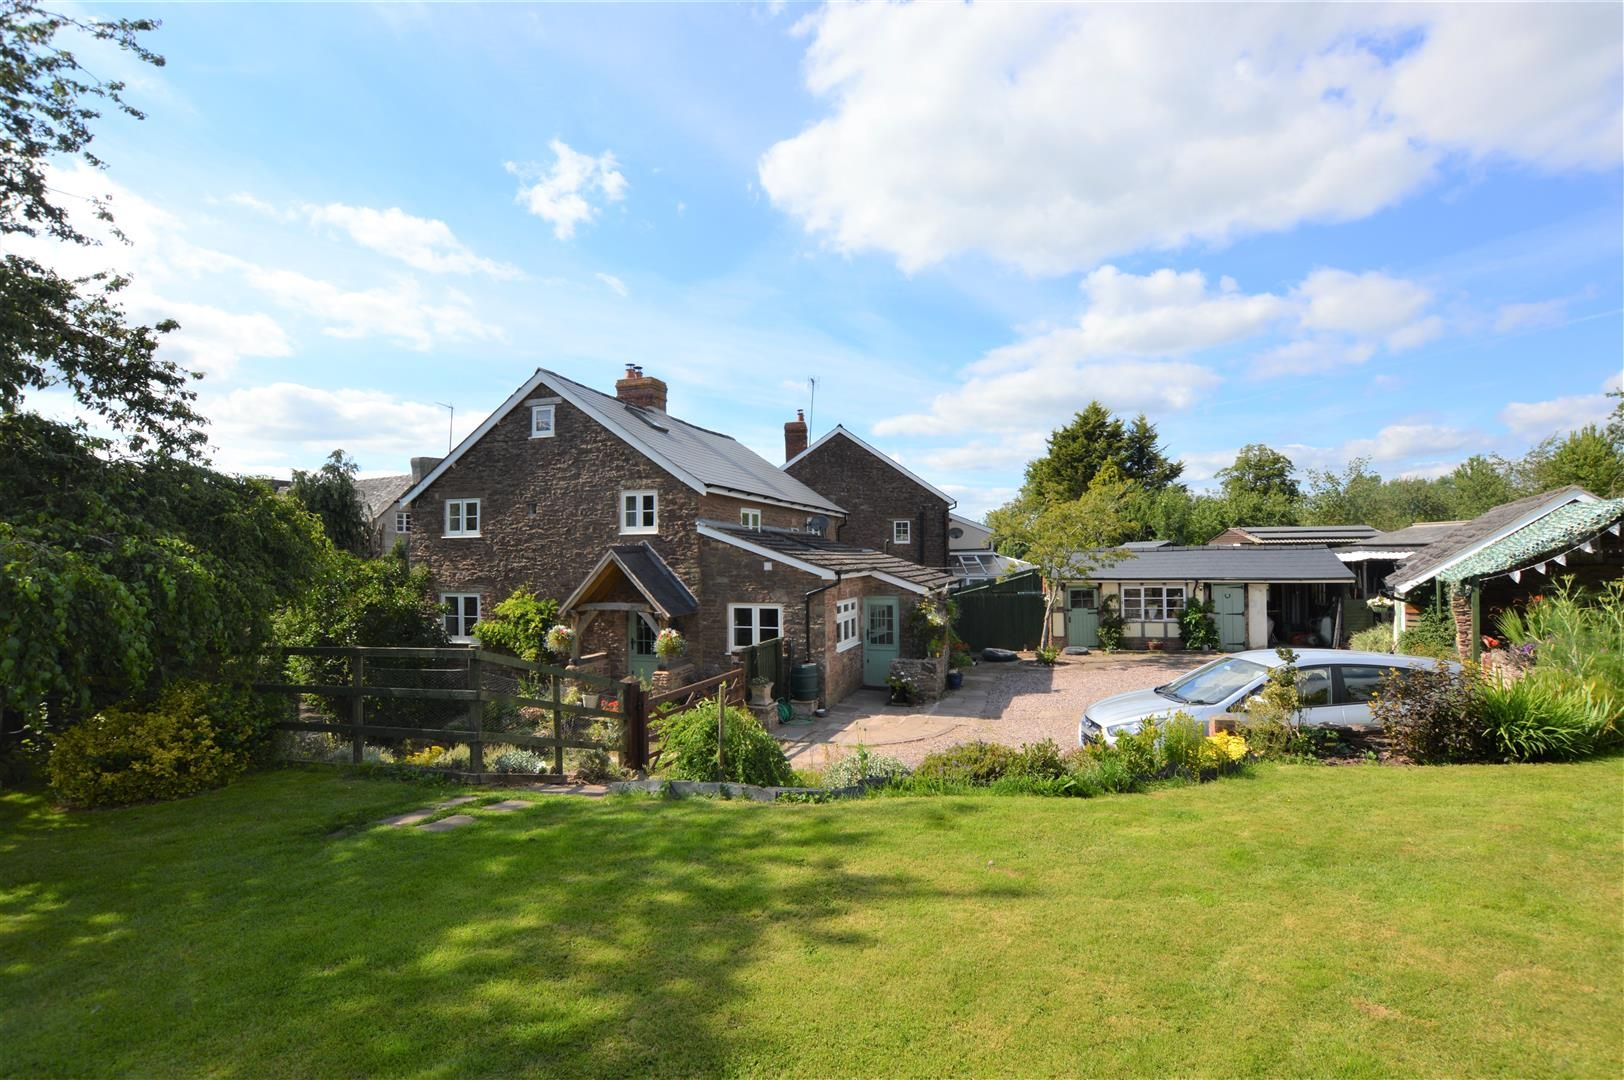 3 bed detached for sale in Brierley, HR6